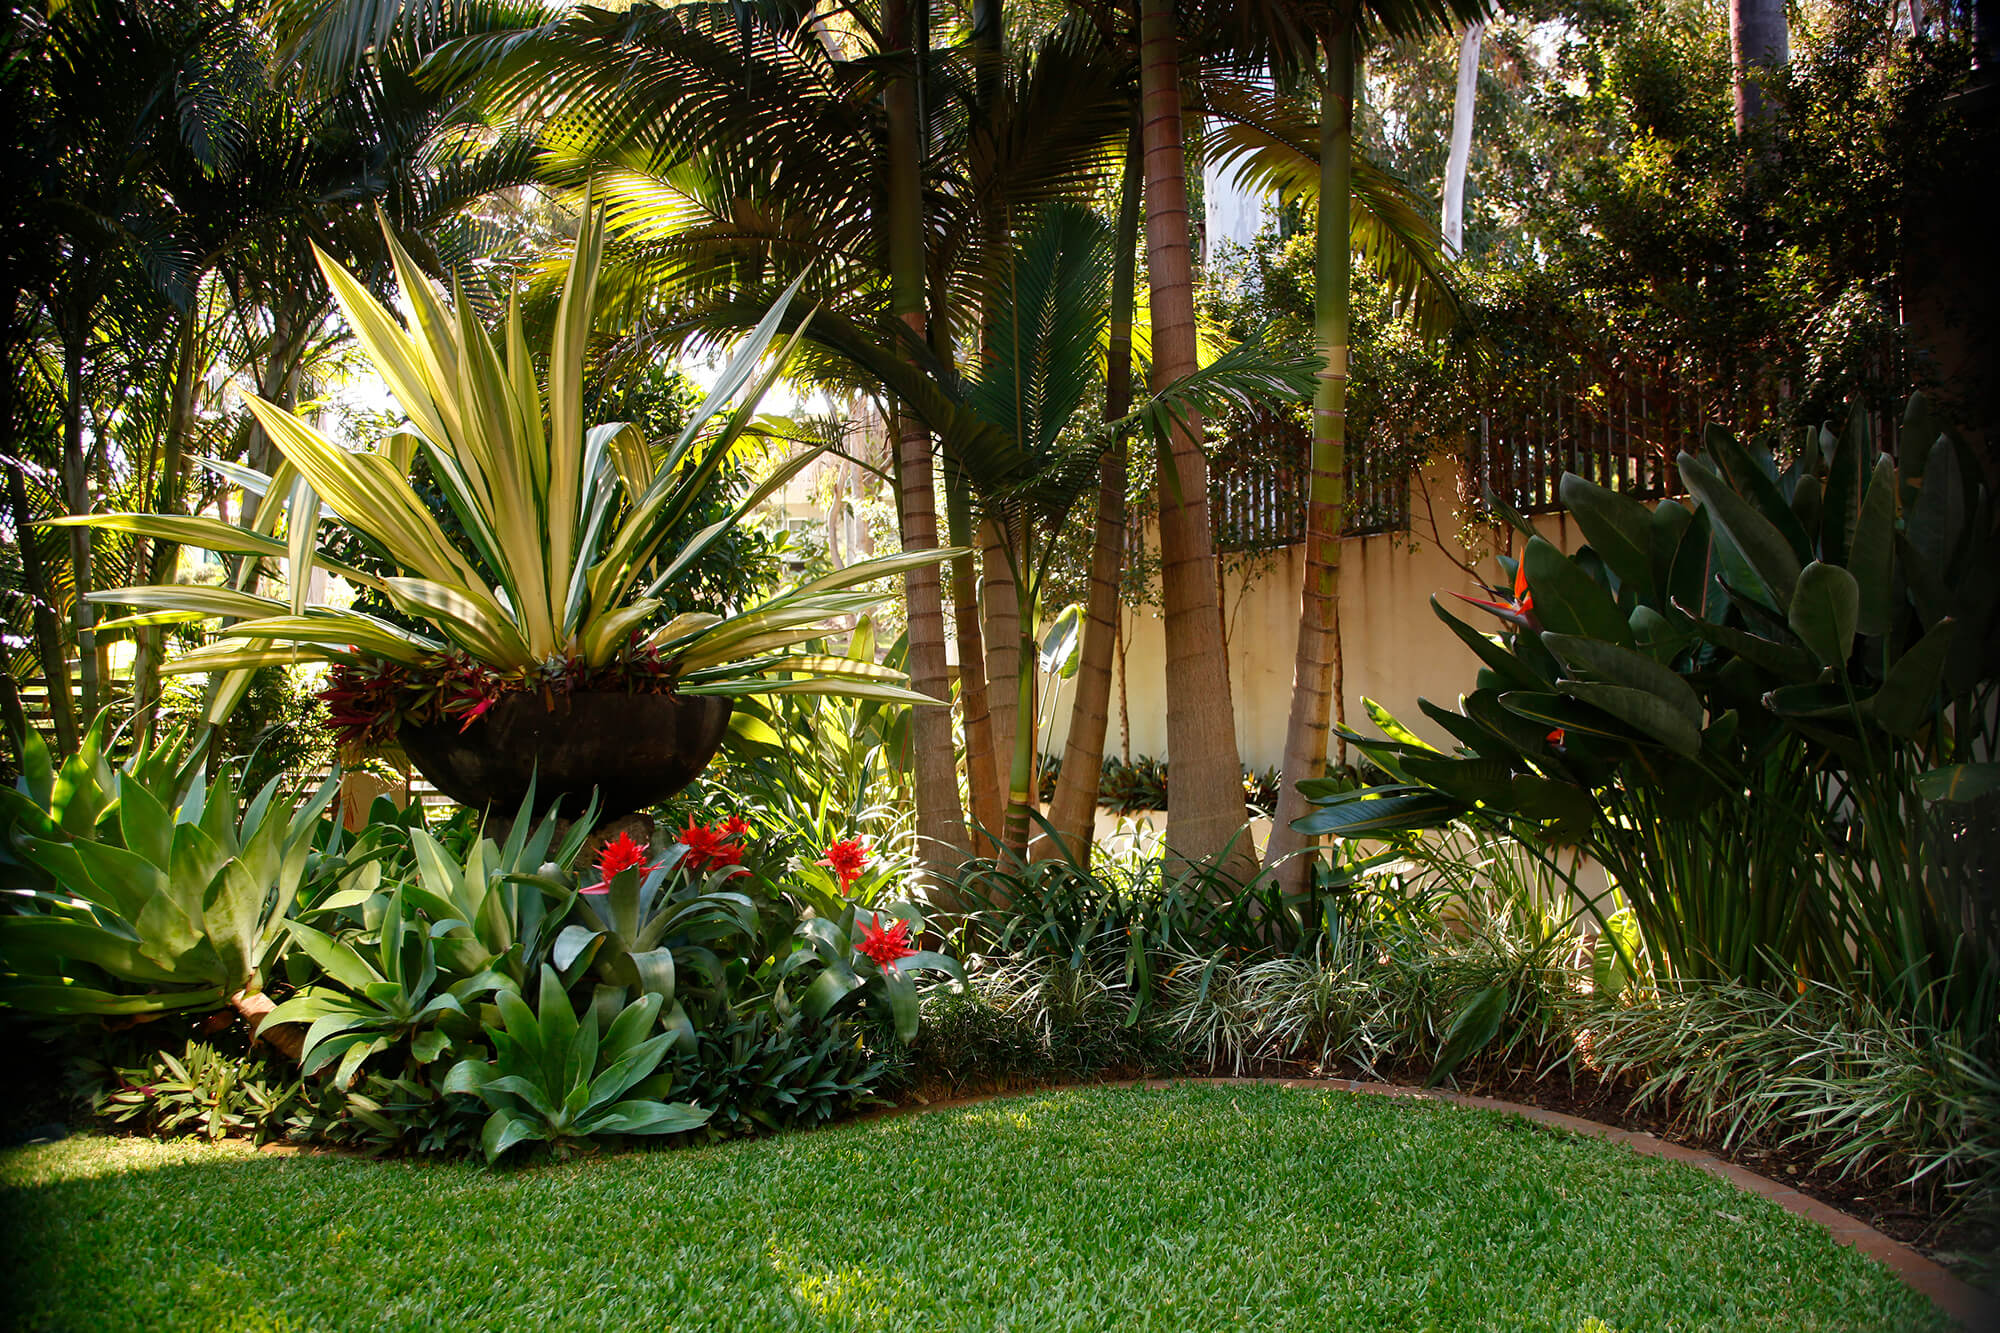 Tropical garden coorparoo boss gardenscapes for Tropical landscape